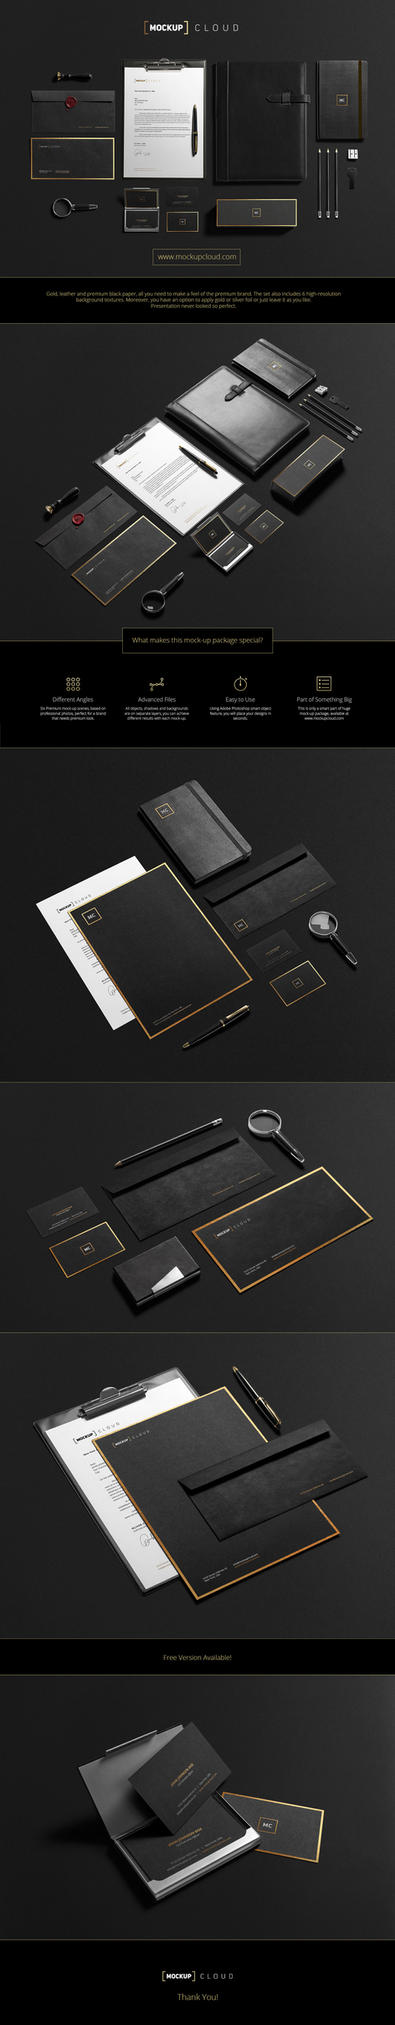 Premium Stationery Mock-Up by Genetic96